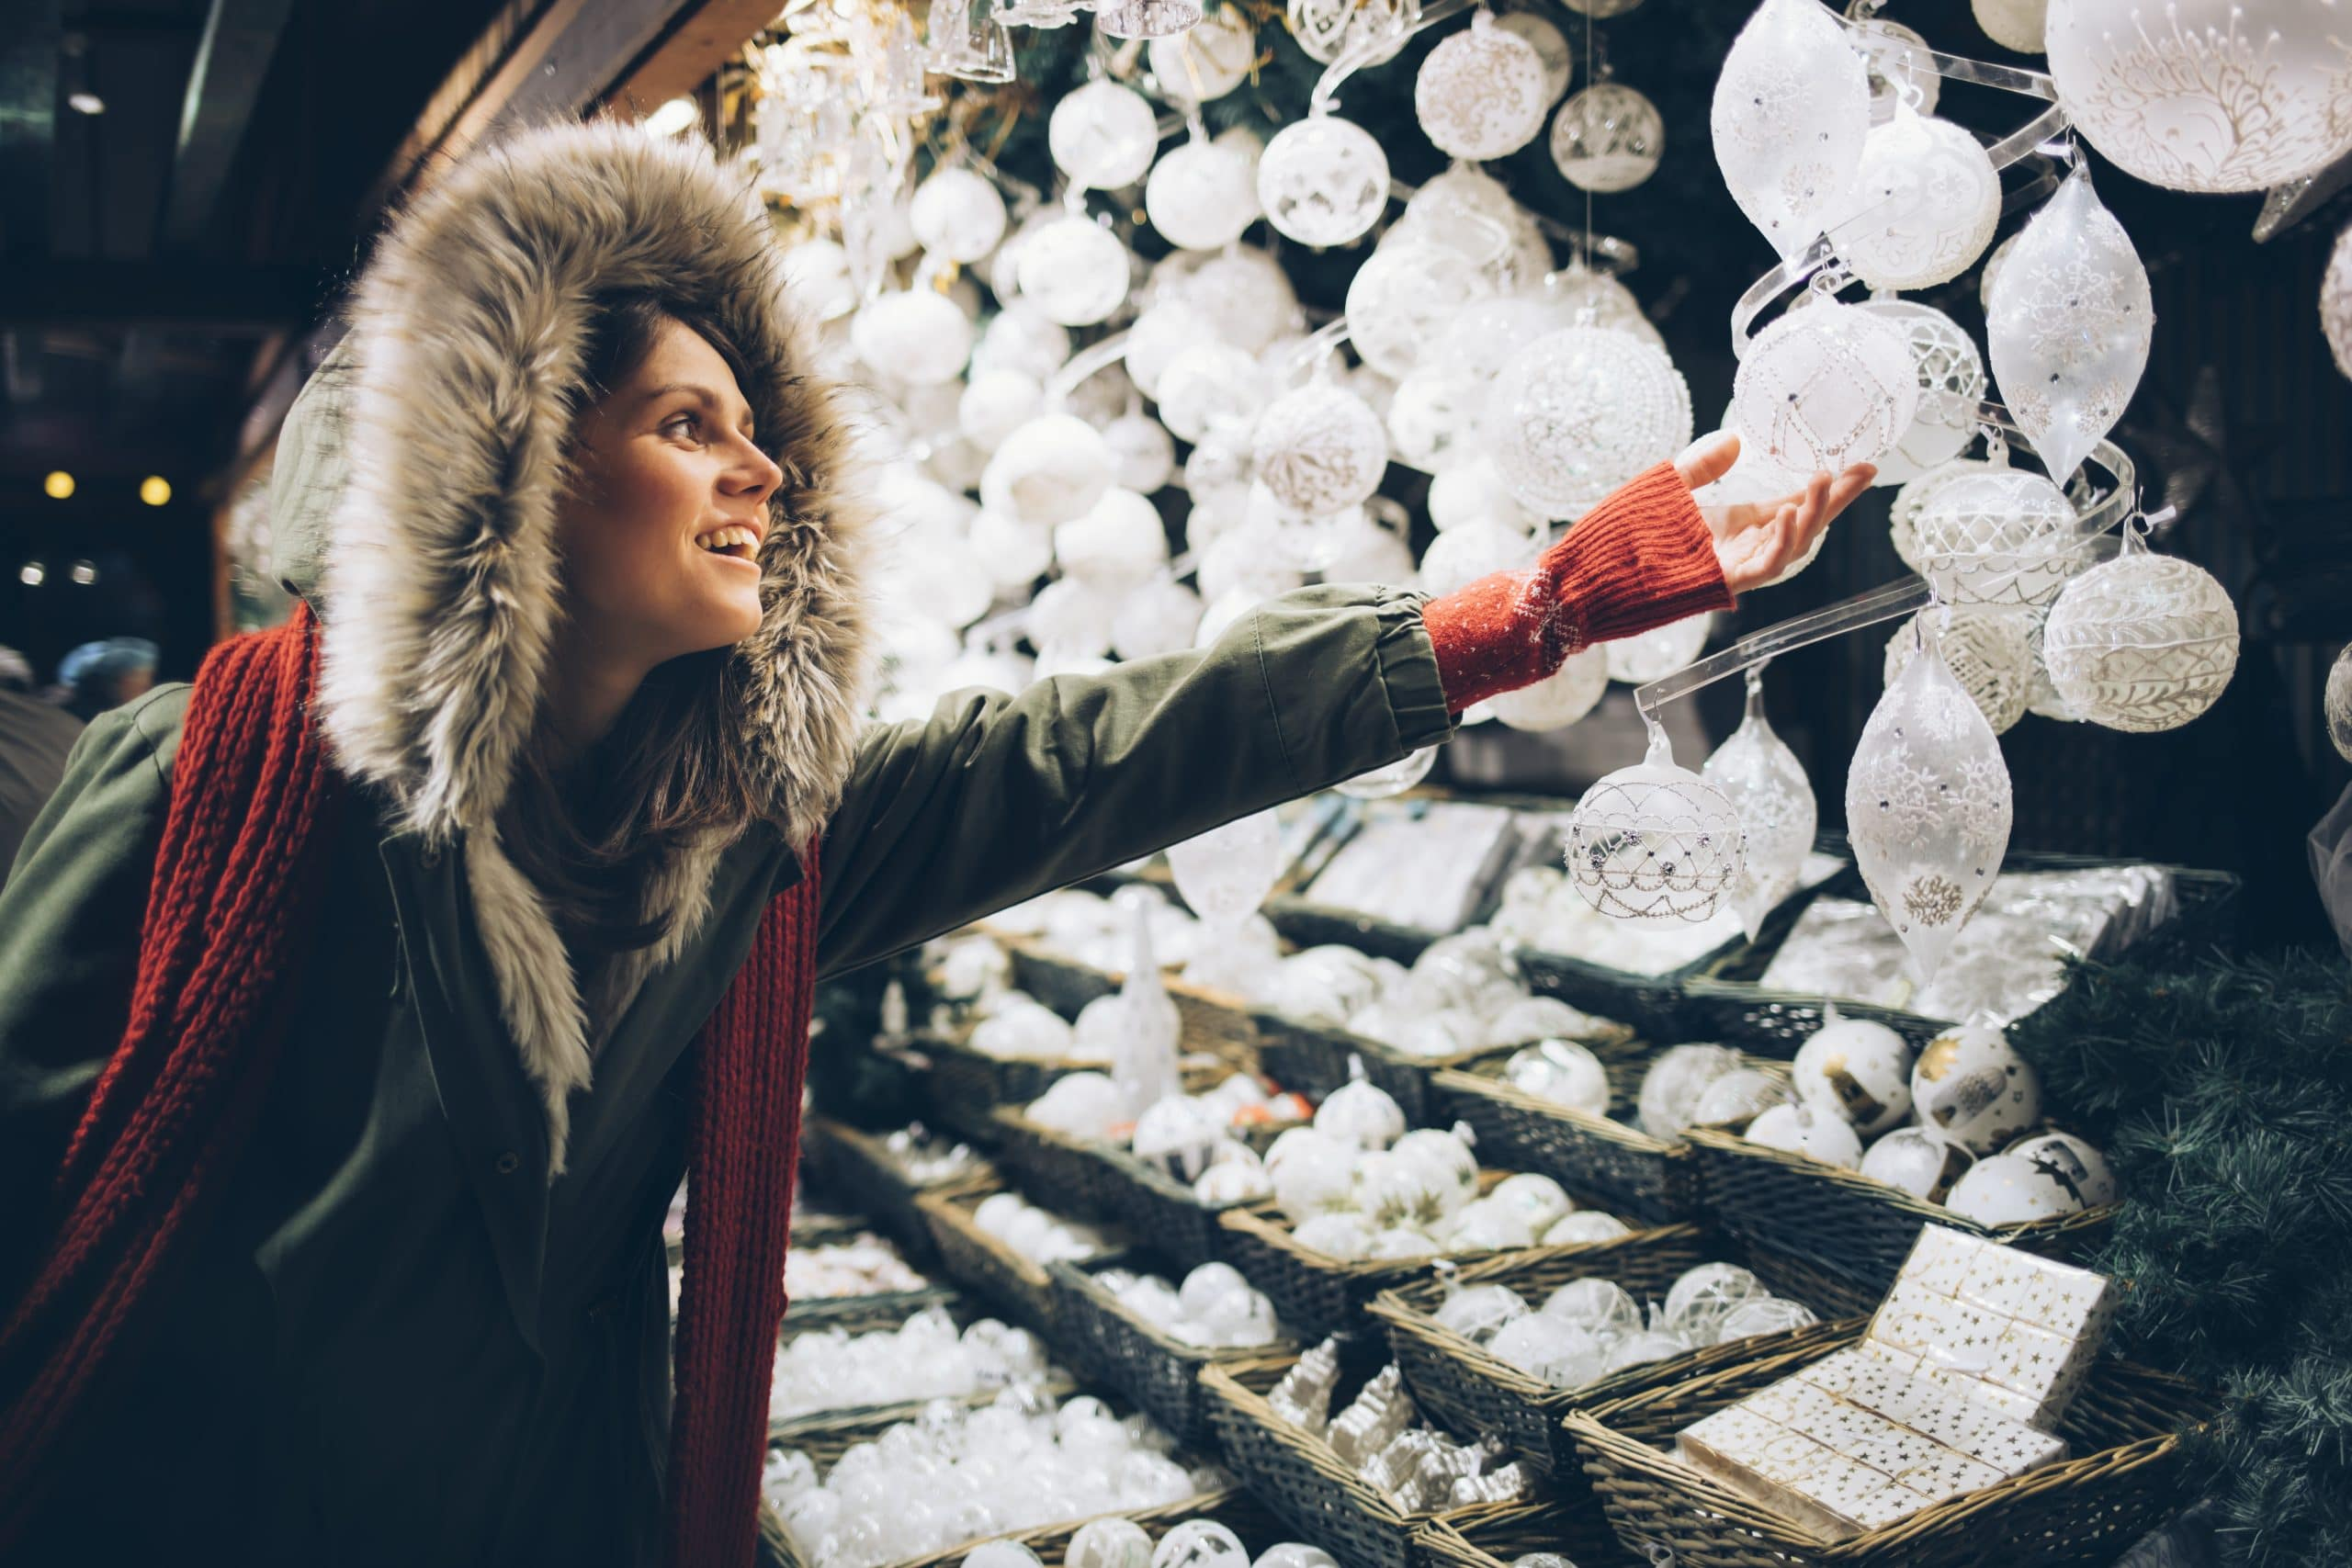 A woman browsing Christmas ornaments at a seasonal pop-up shop.